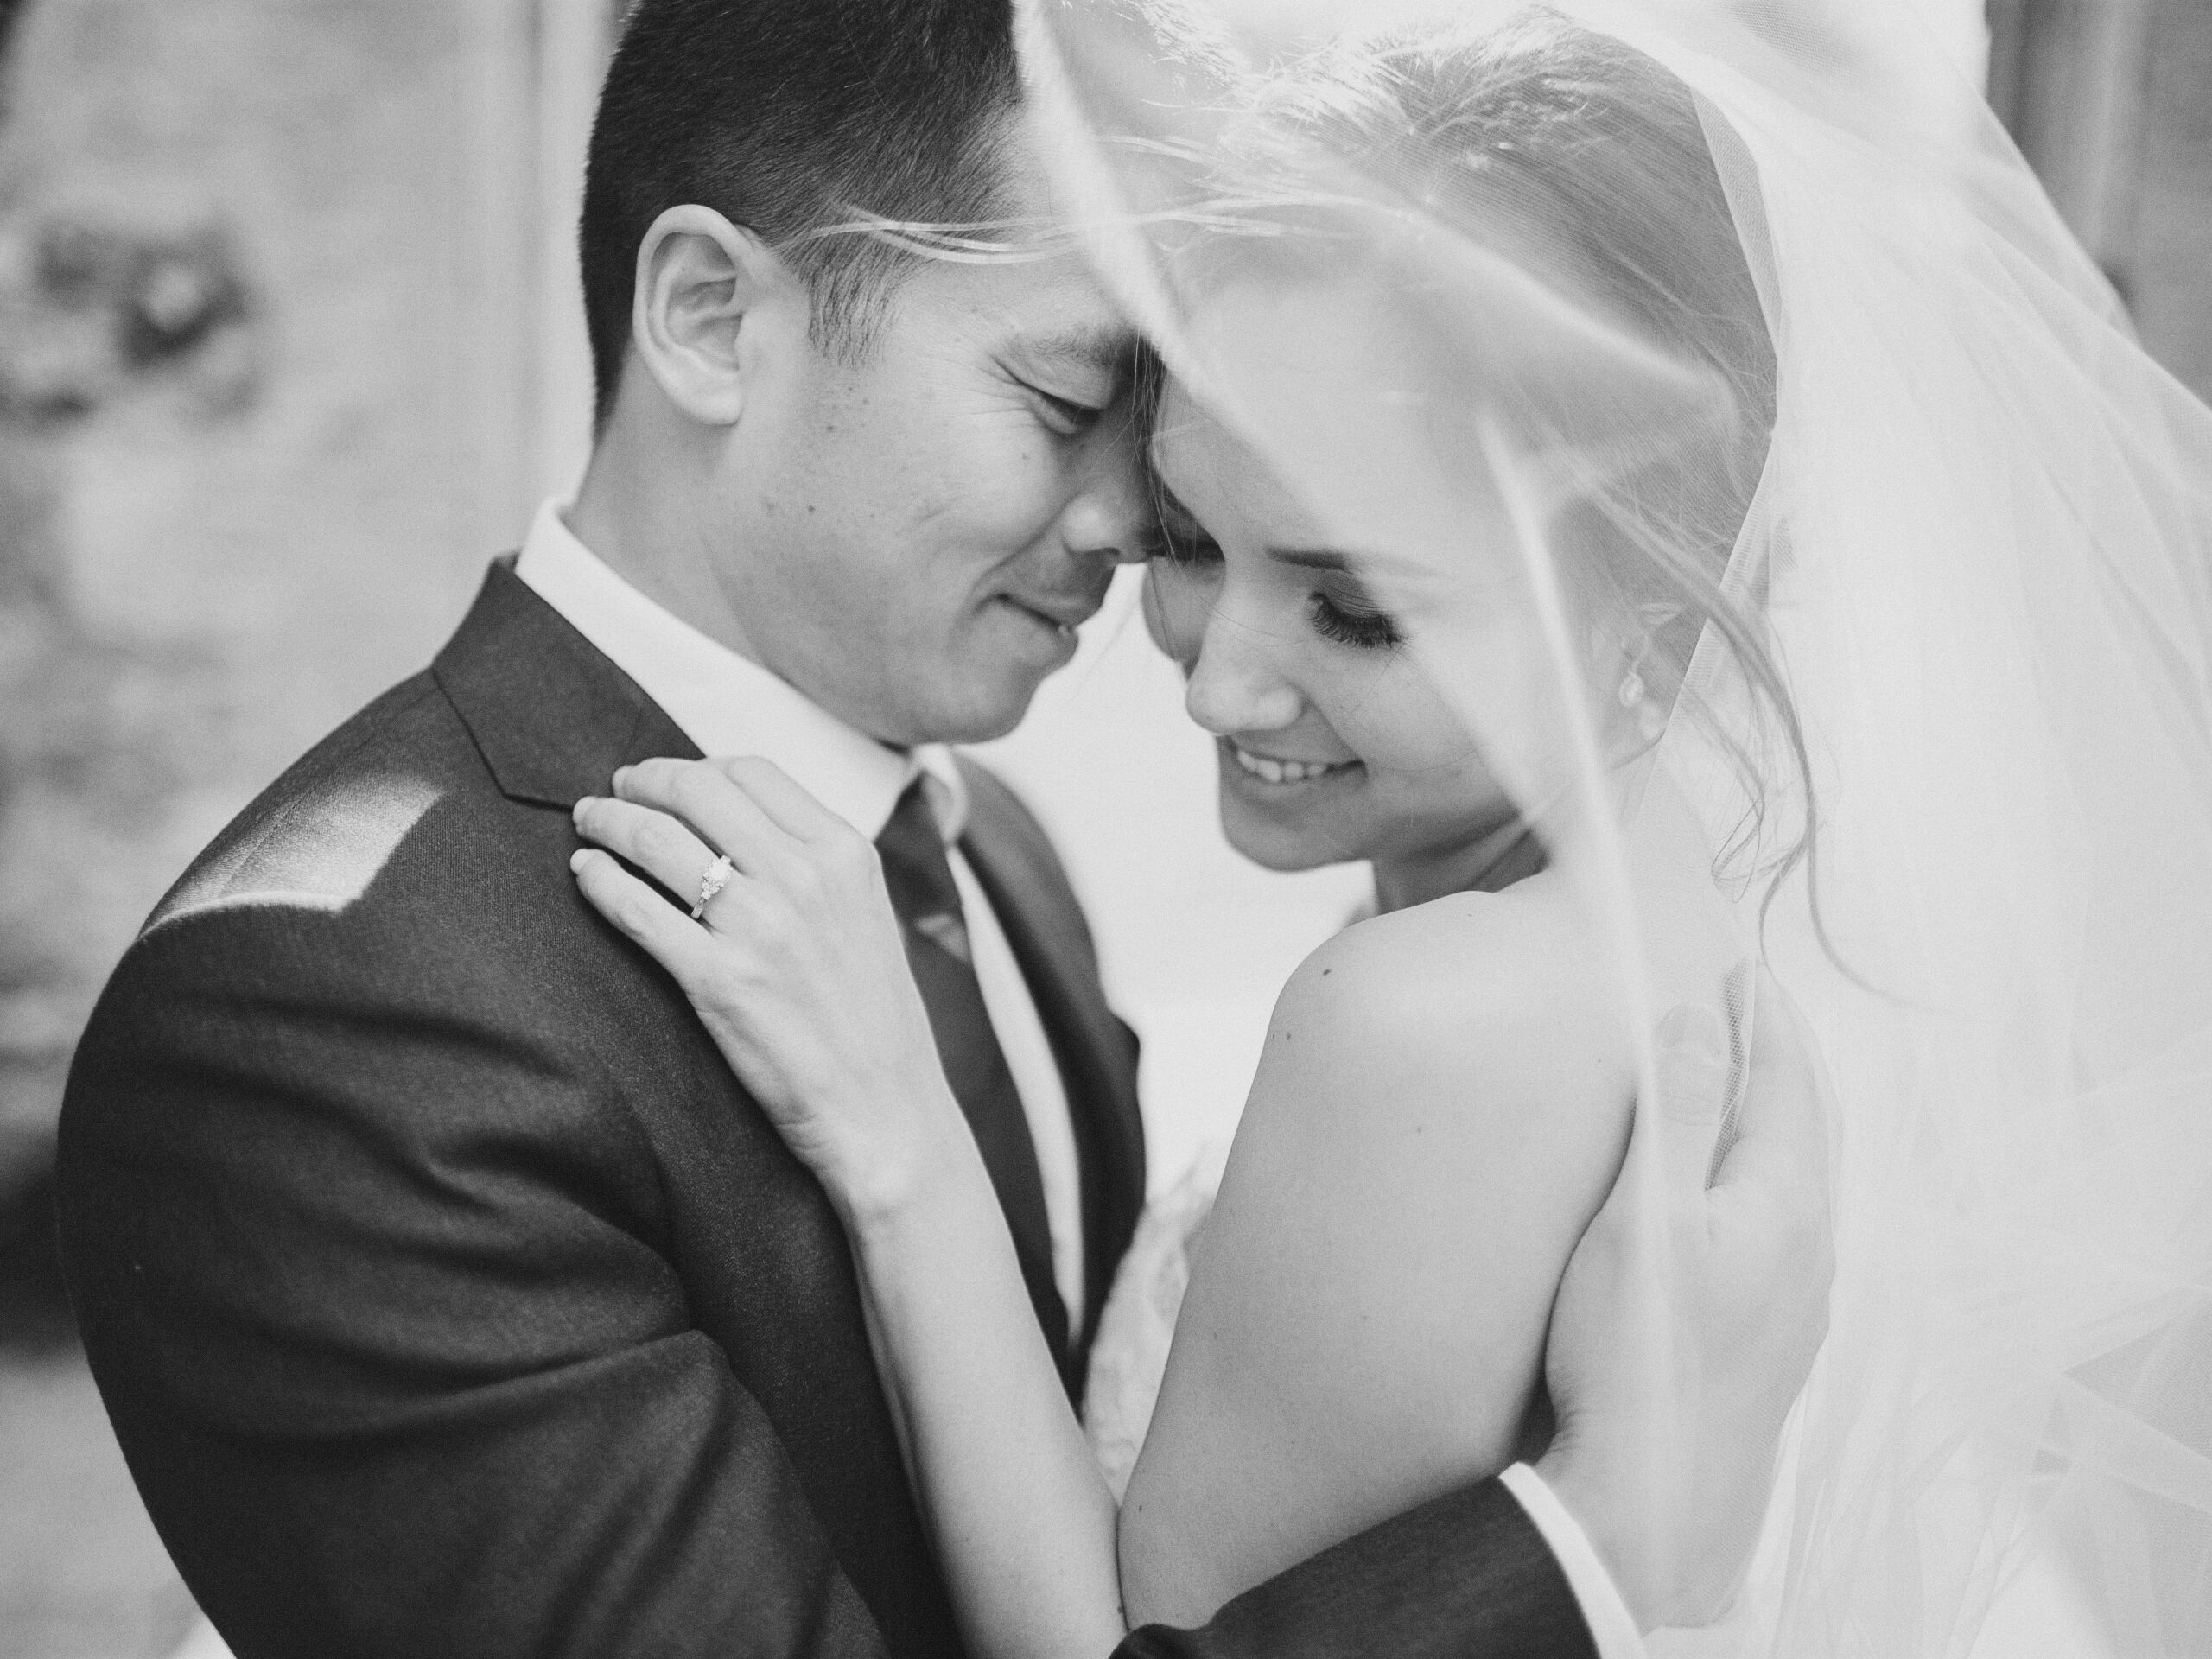 Wedding Photography Styles You Need to Know